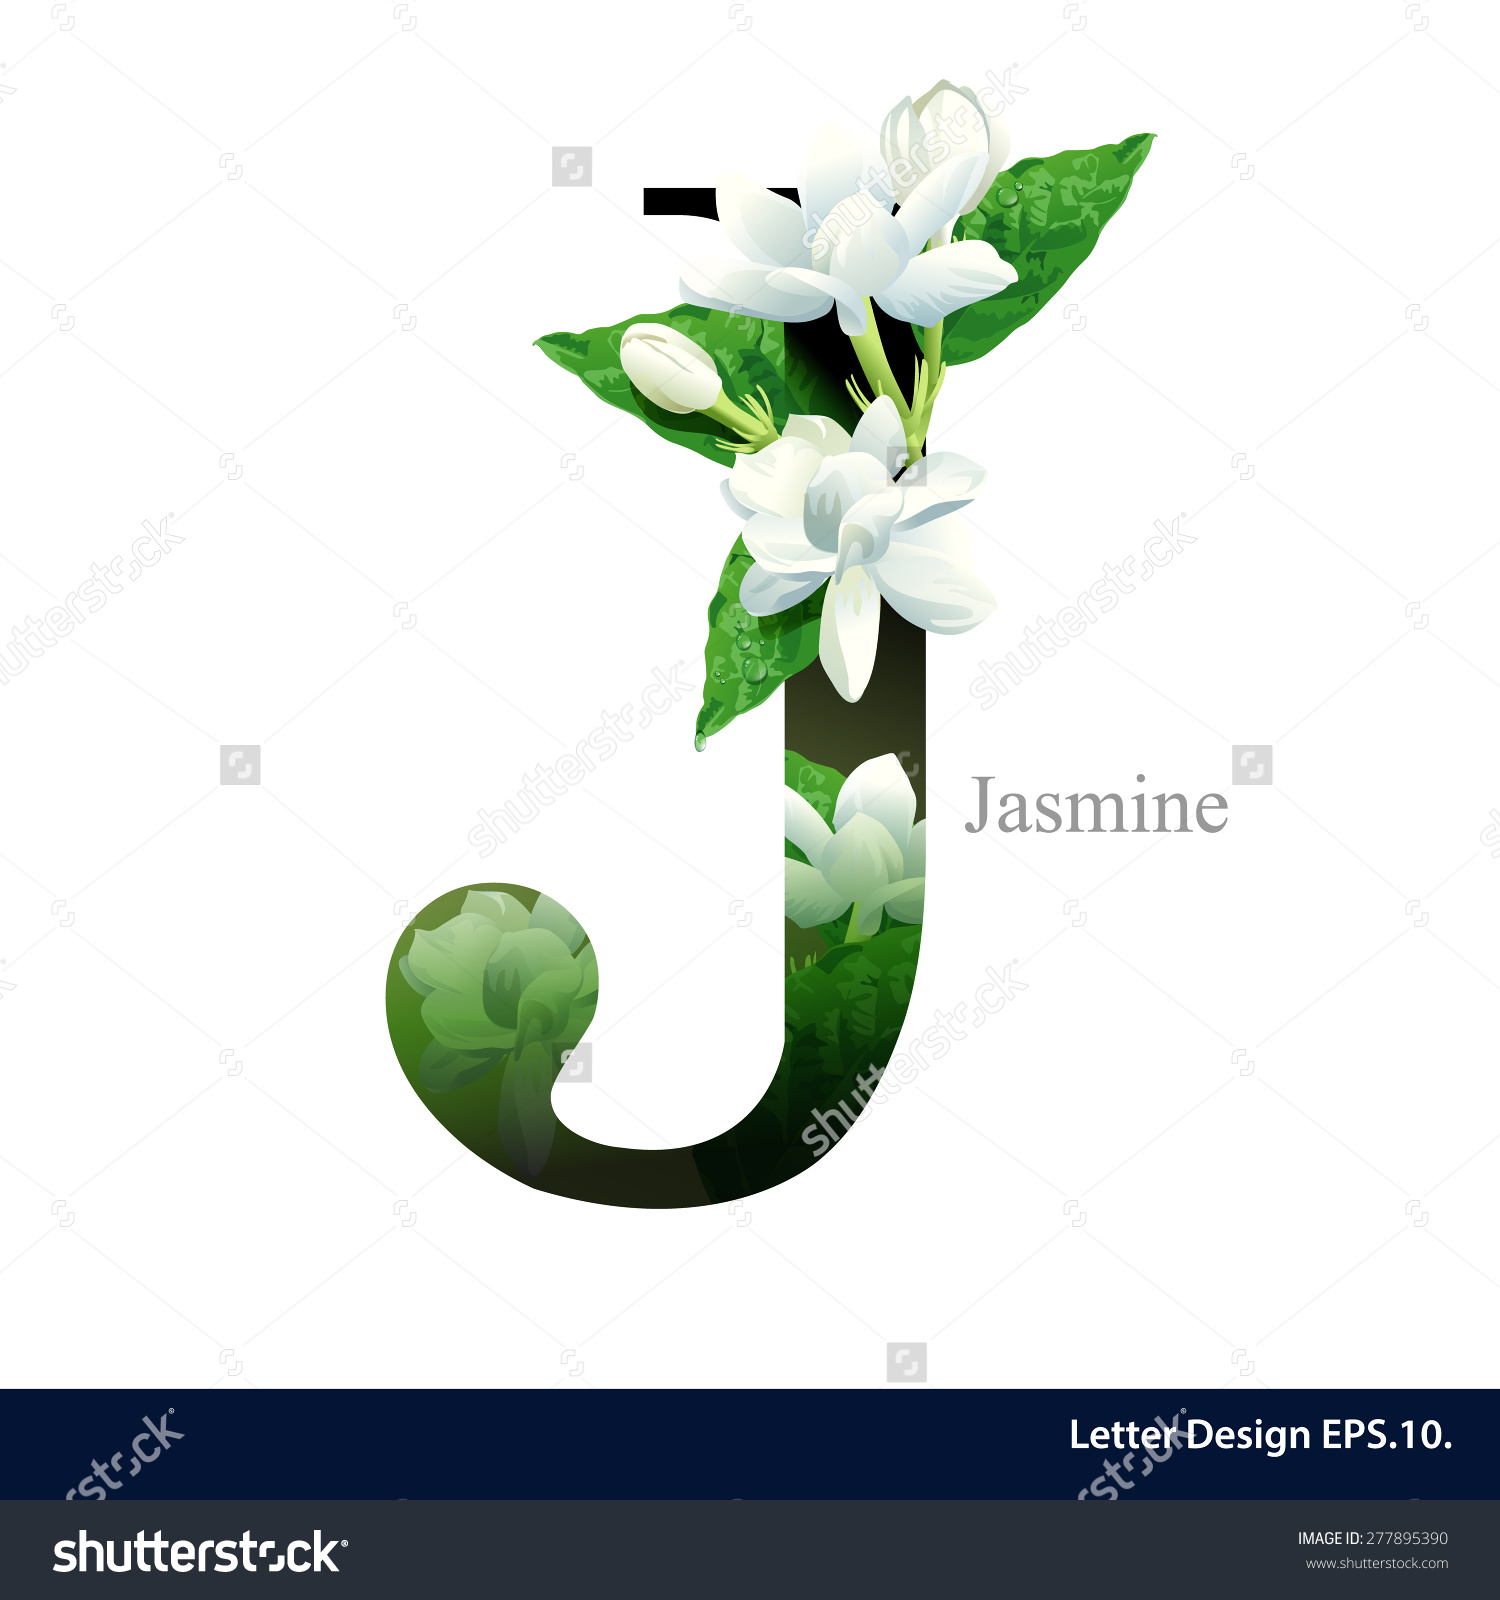 Alphabet flower clipart letter j graphic free download Letter J Vector Alphabet Jasmine Flower Stock Vector 277895390 ... graphic free download